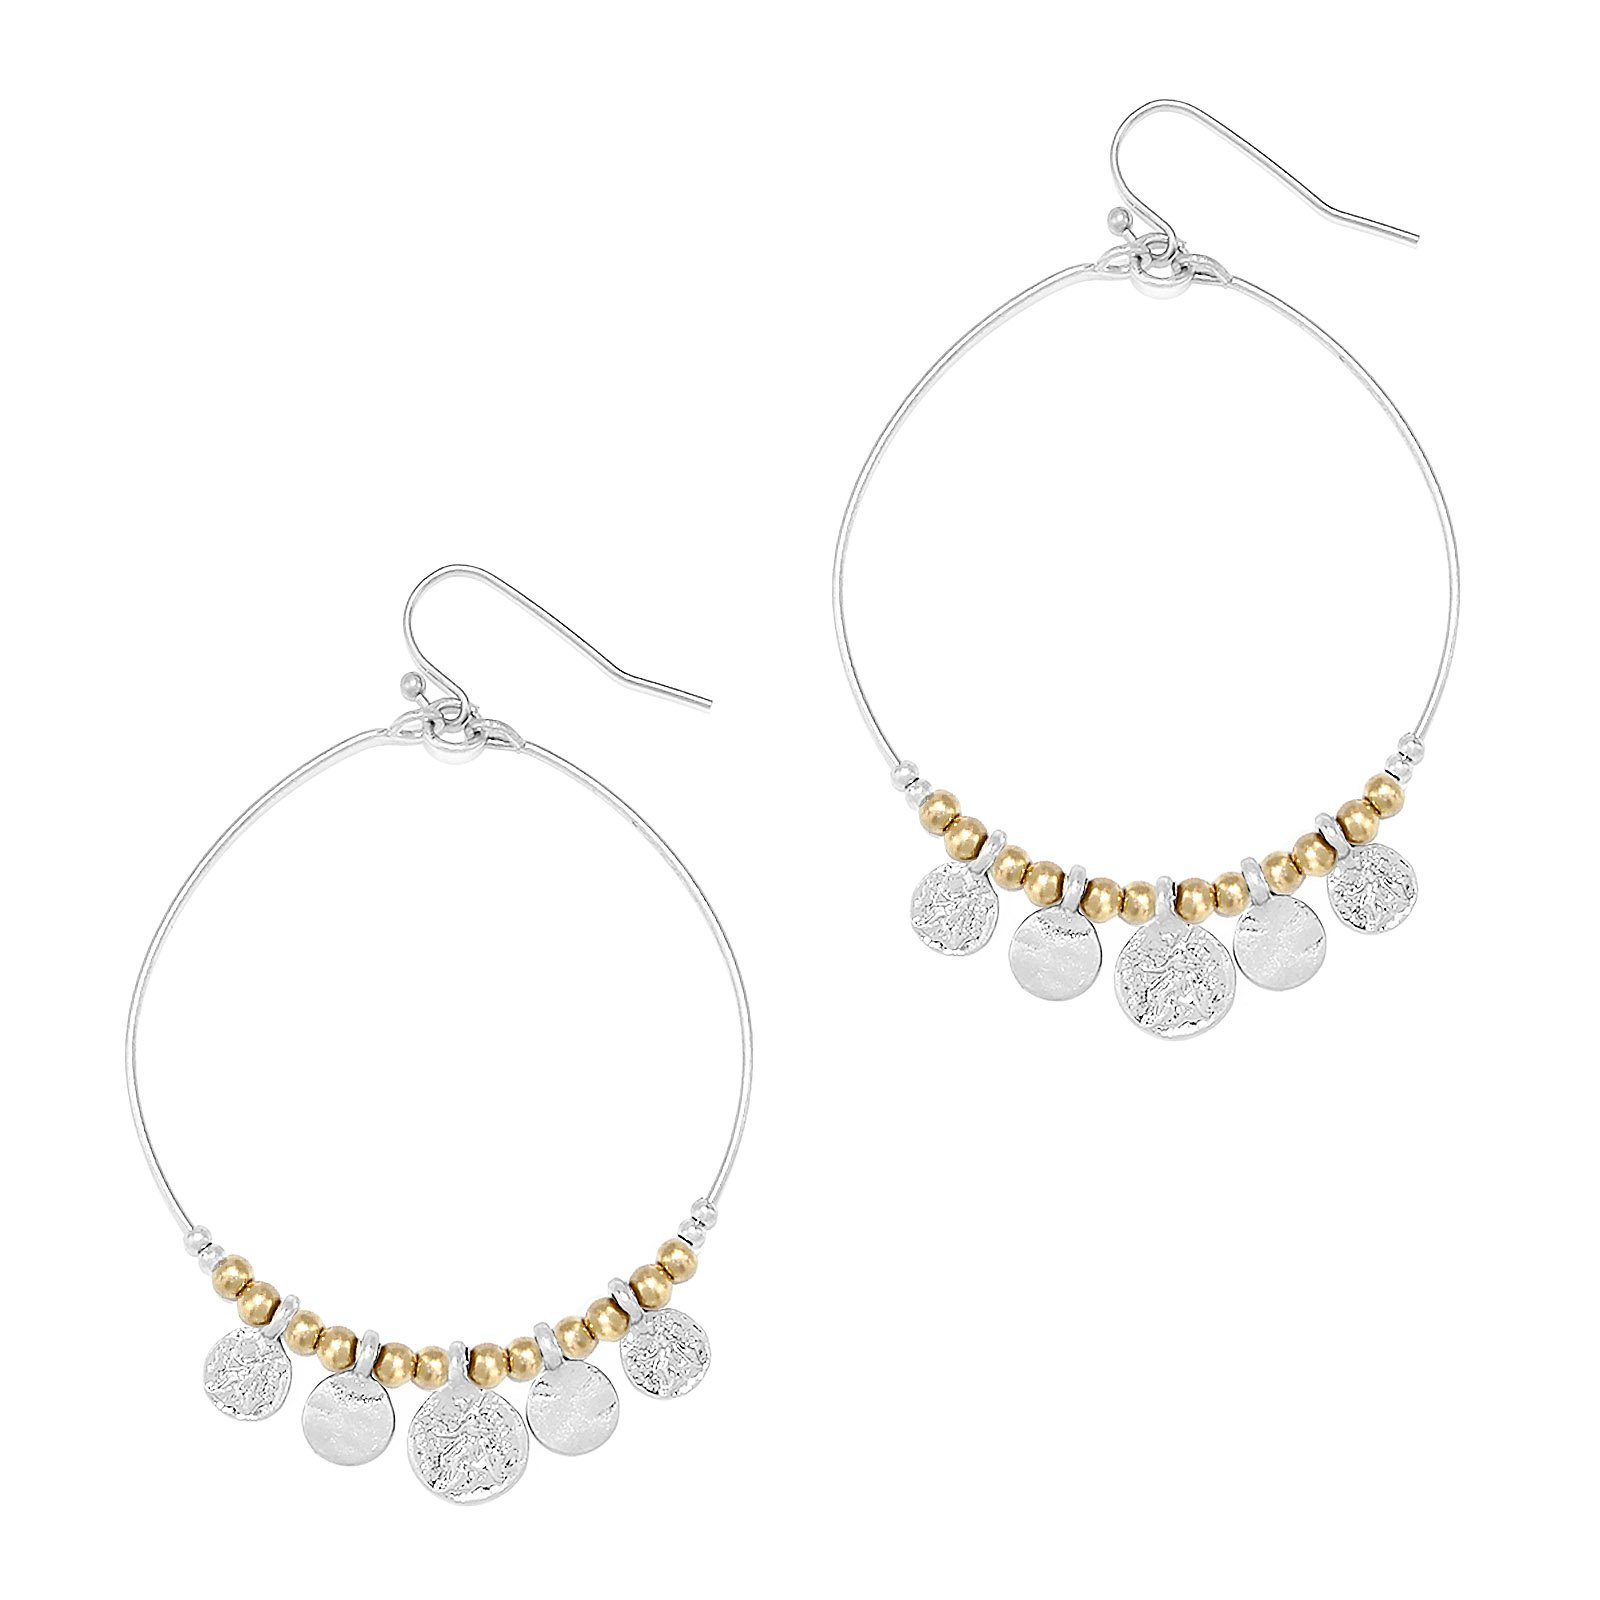 Pomina Metal Beaded Hoop with Coin Charms Drop Earrings (Worn Silver)